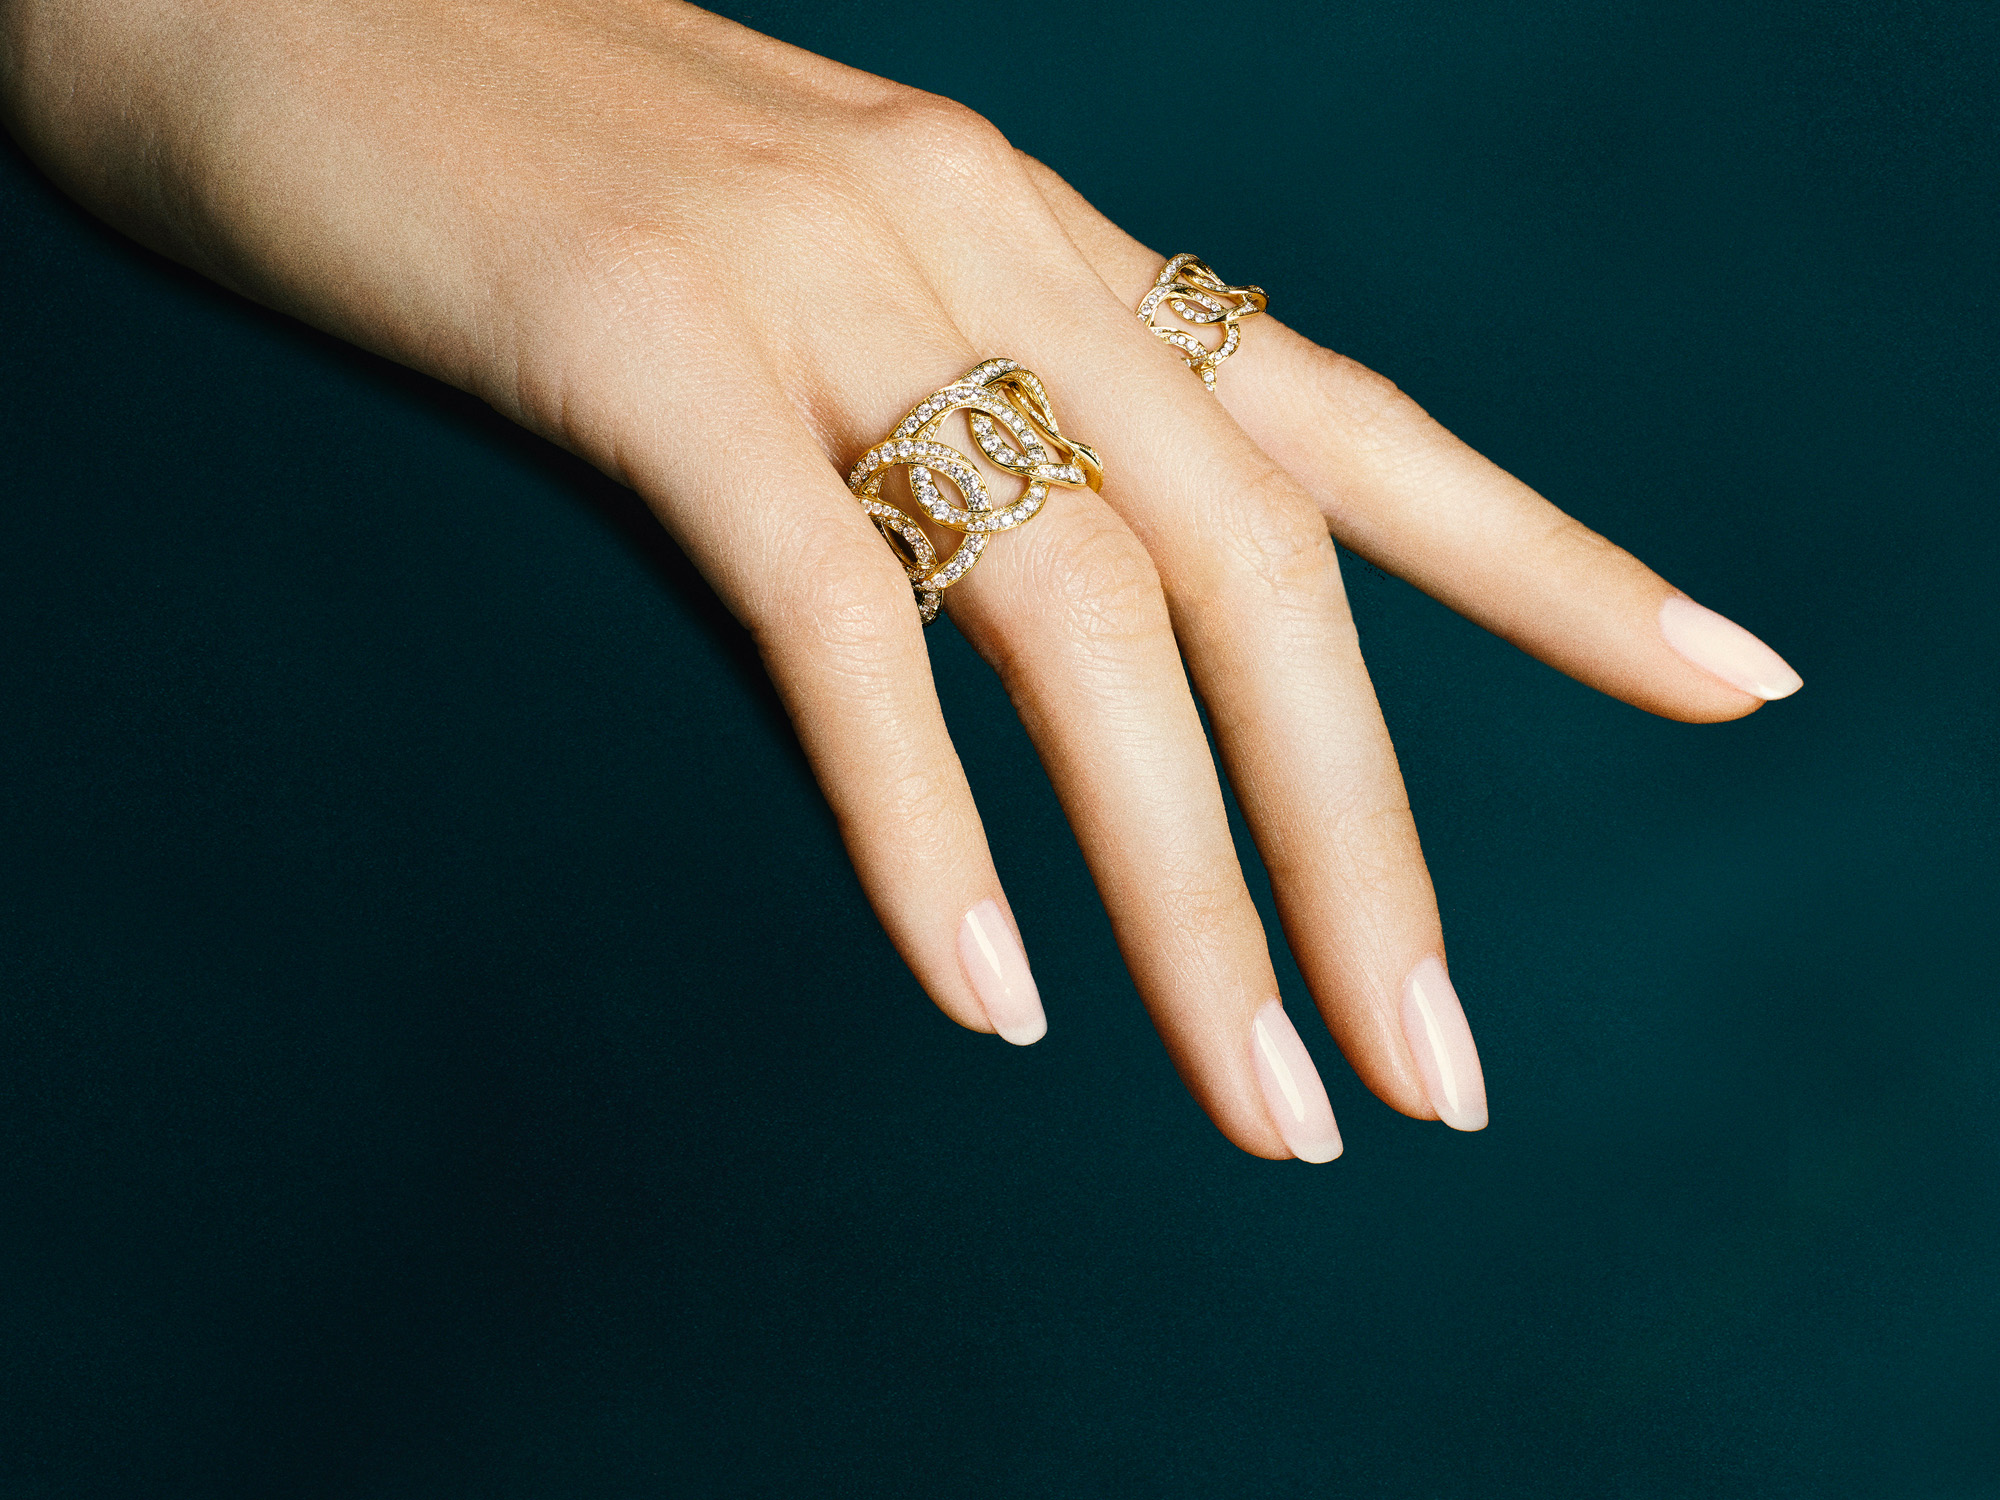 Model wears Inspired by Twombly rings from the Graff jewellery collection